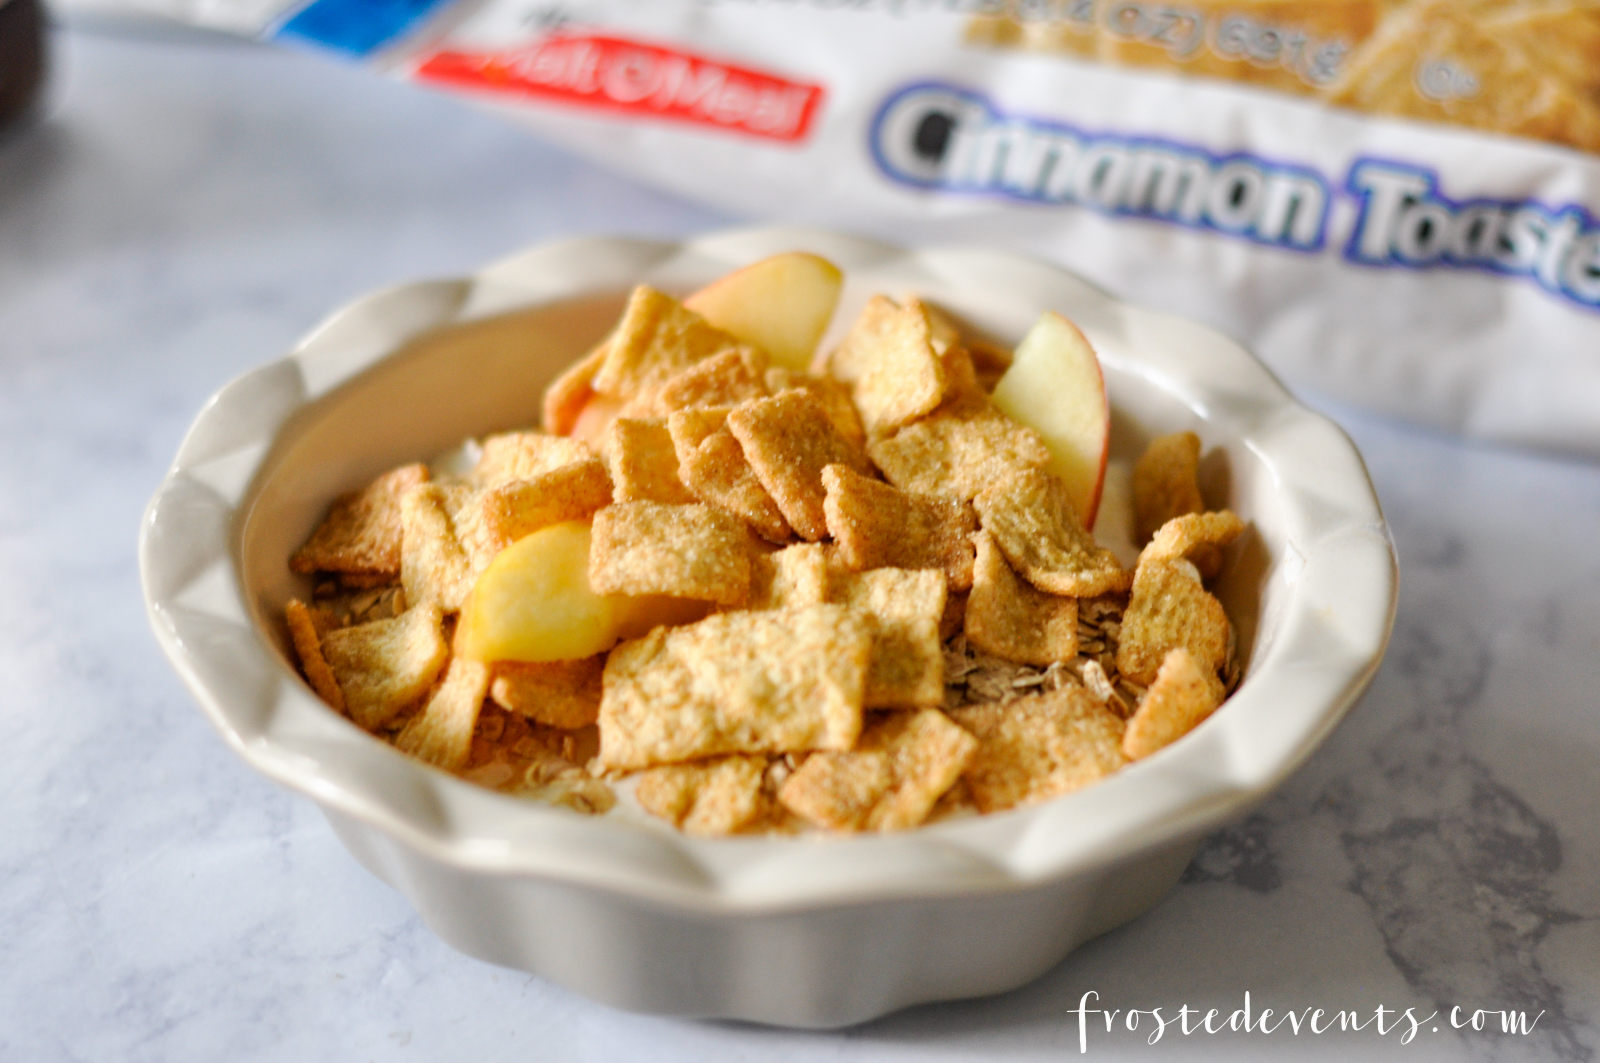 Cereal Hacks Yummy Snacks for Breakfast or Dessert with Malt-O-Meal bagged cereal, recipe by frostedevents.com @frostedevents